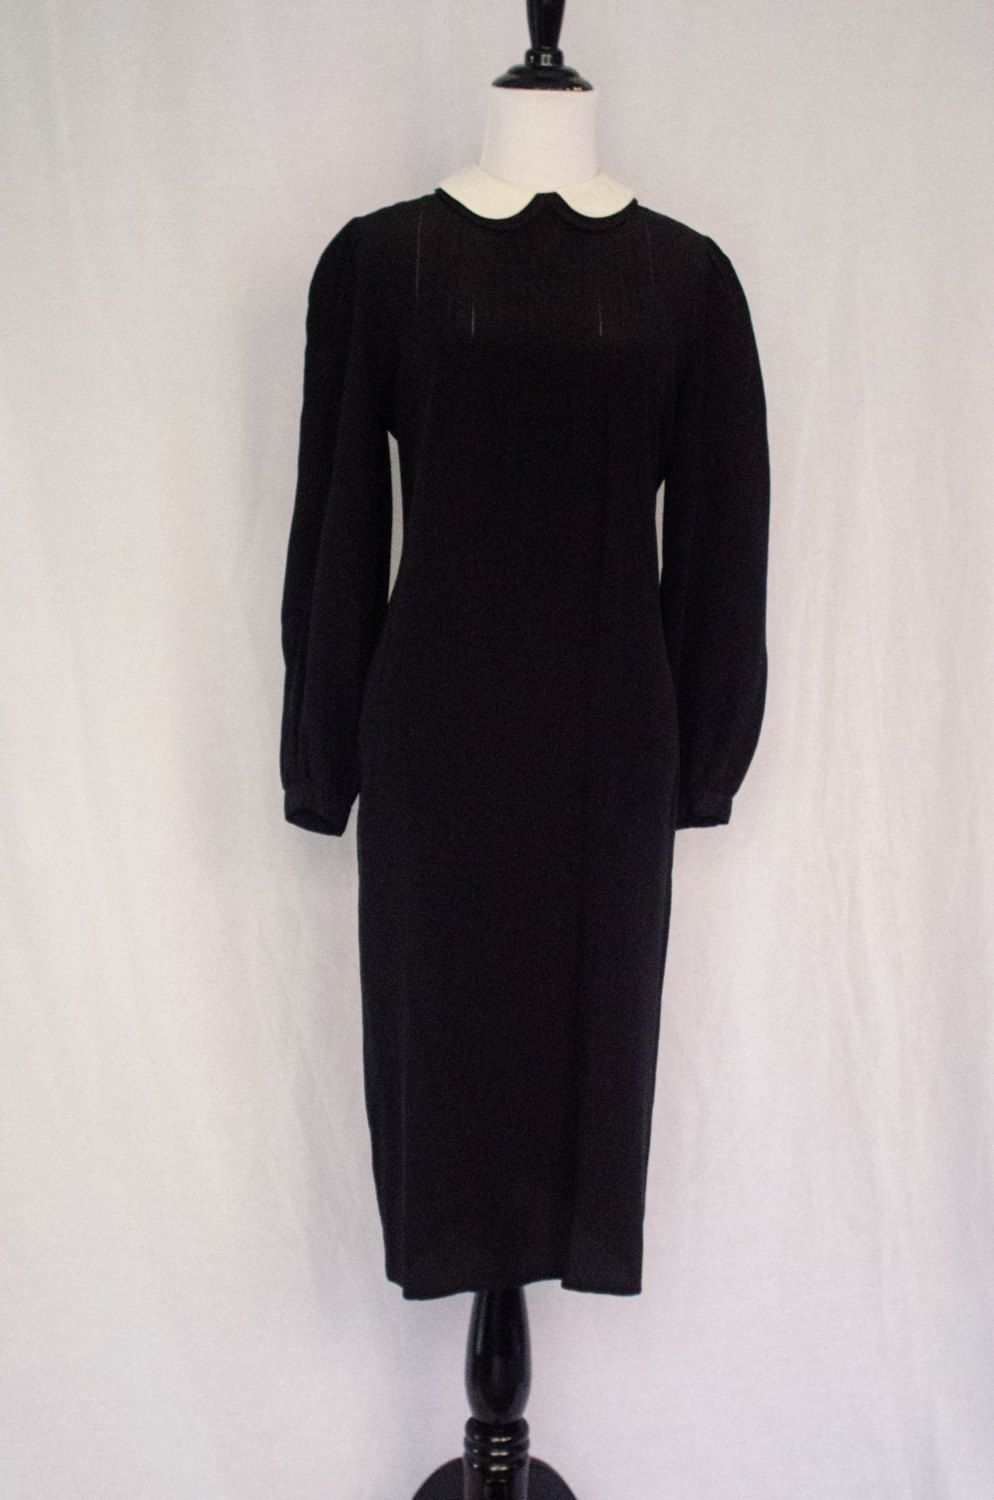 Vintage 1960's 'Madeline' Black and White Silk Shift Dress Size S - M by BeehausVintage on Etsy